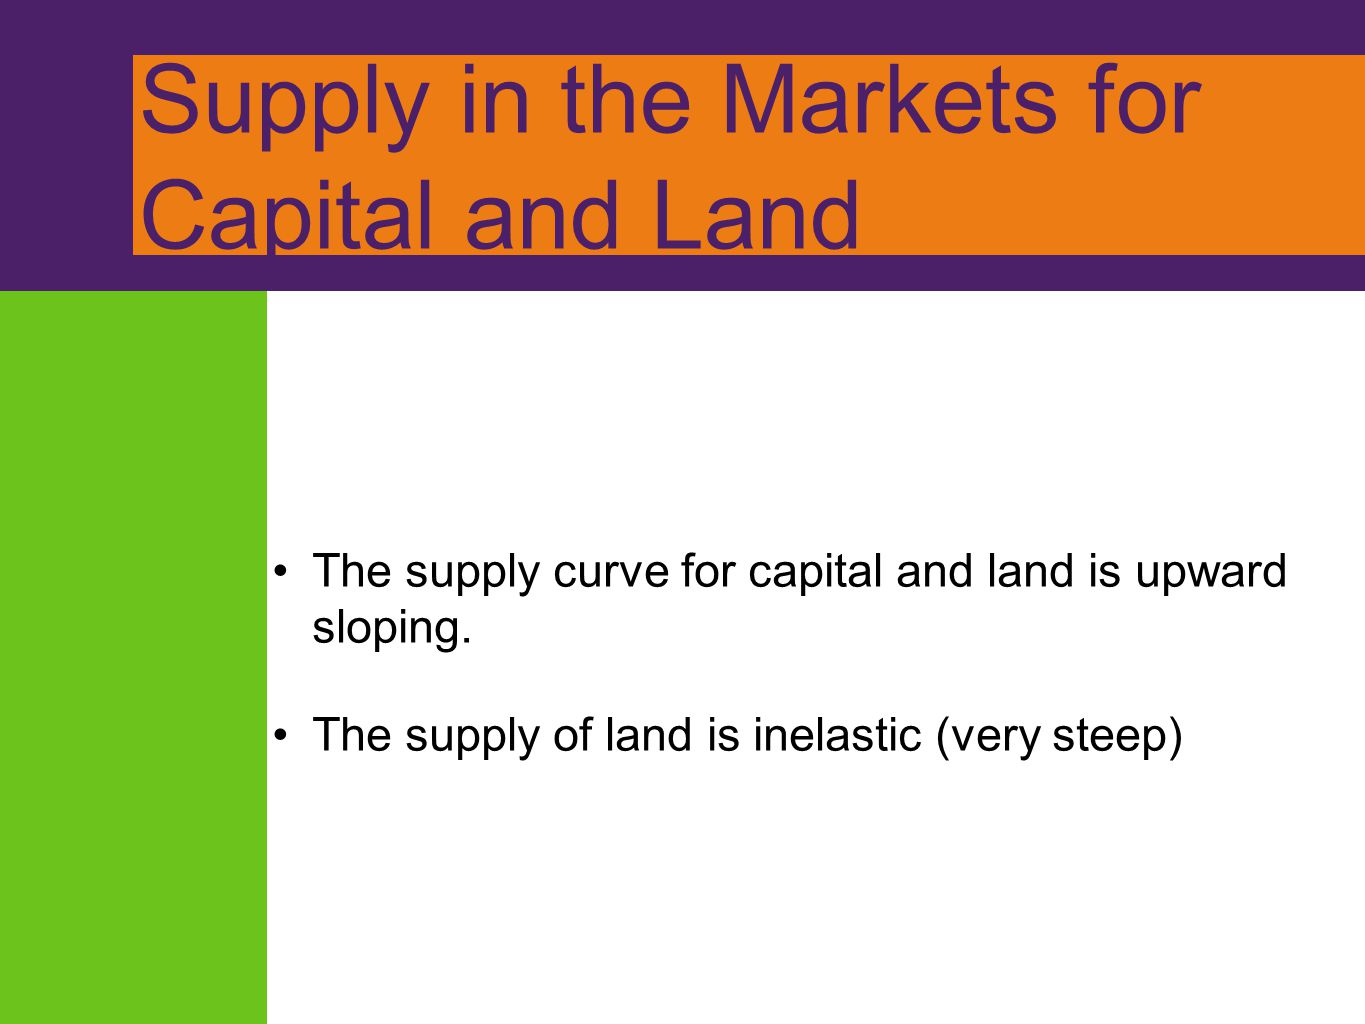 Supply in the Markets for Capital and Land